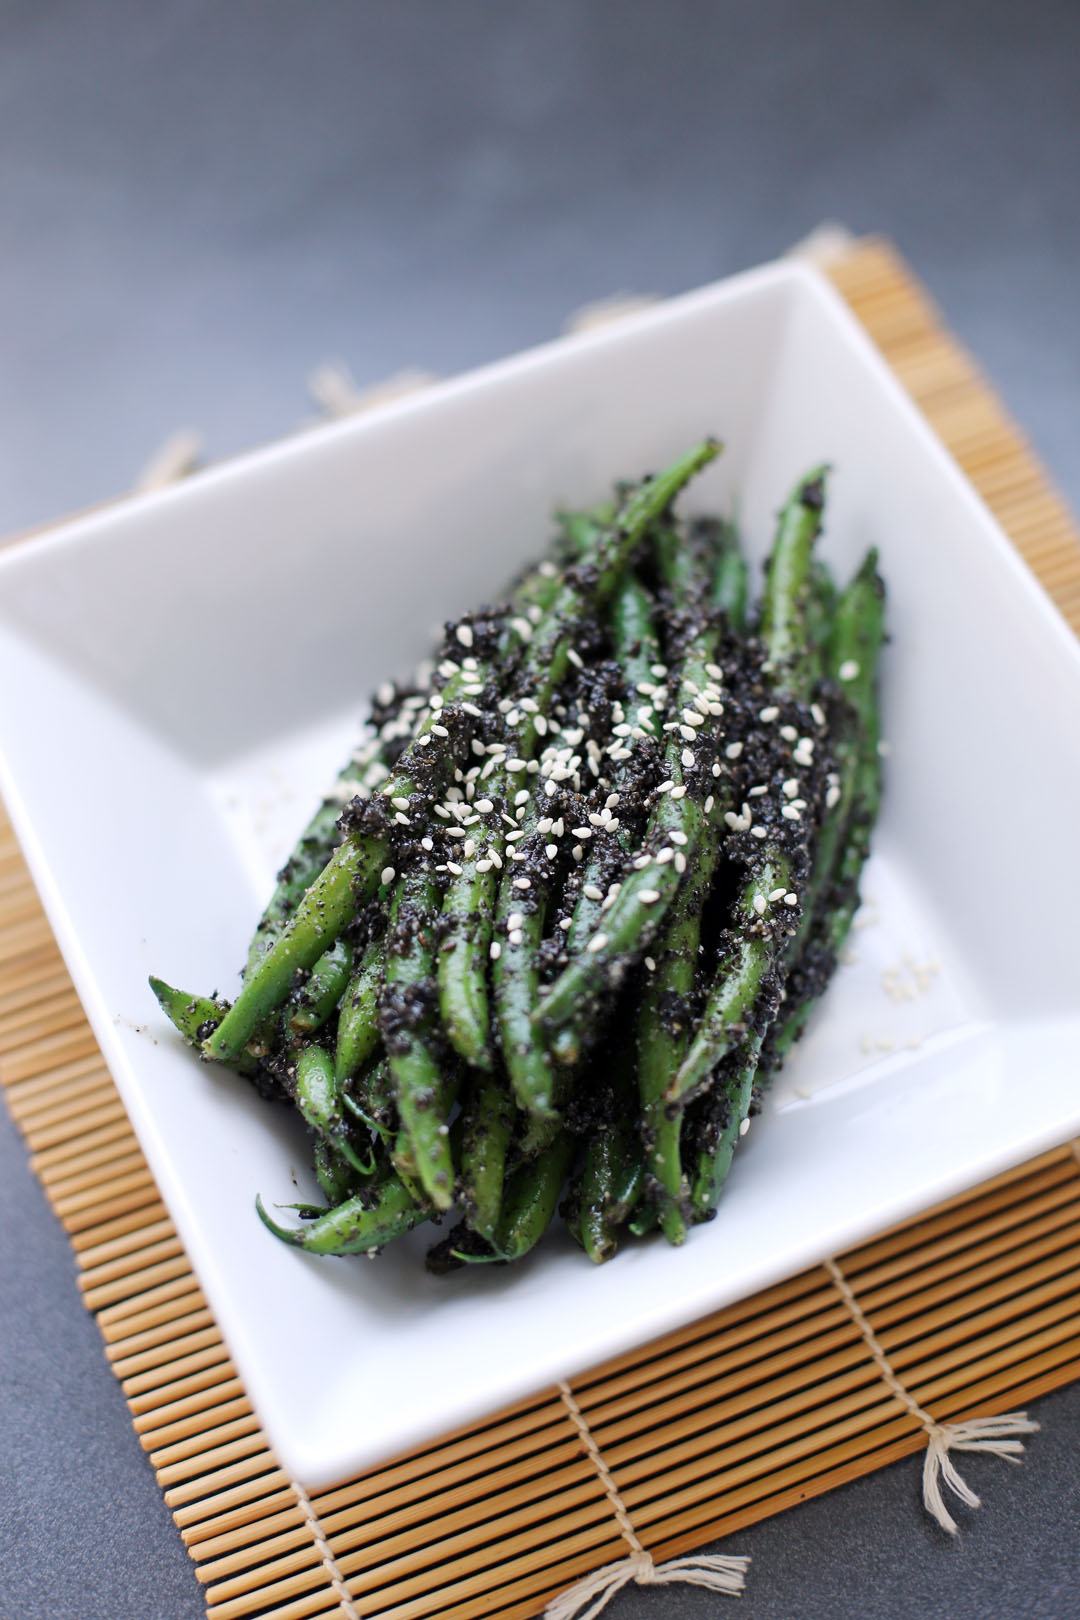 Black Sesame Kitchen Price